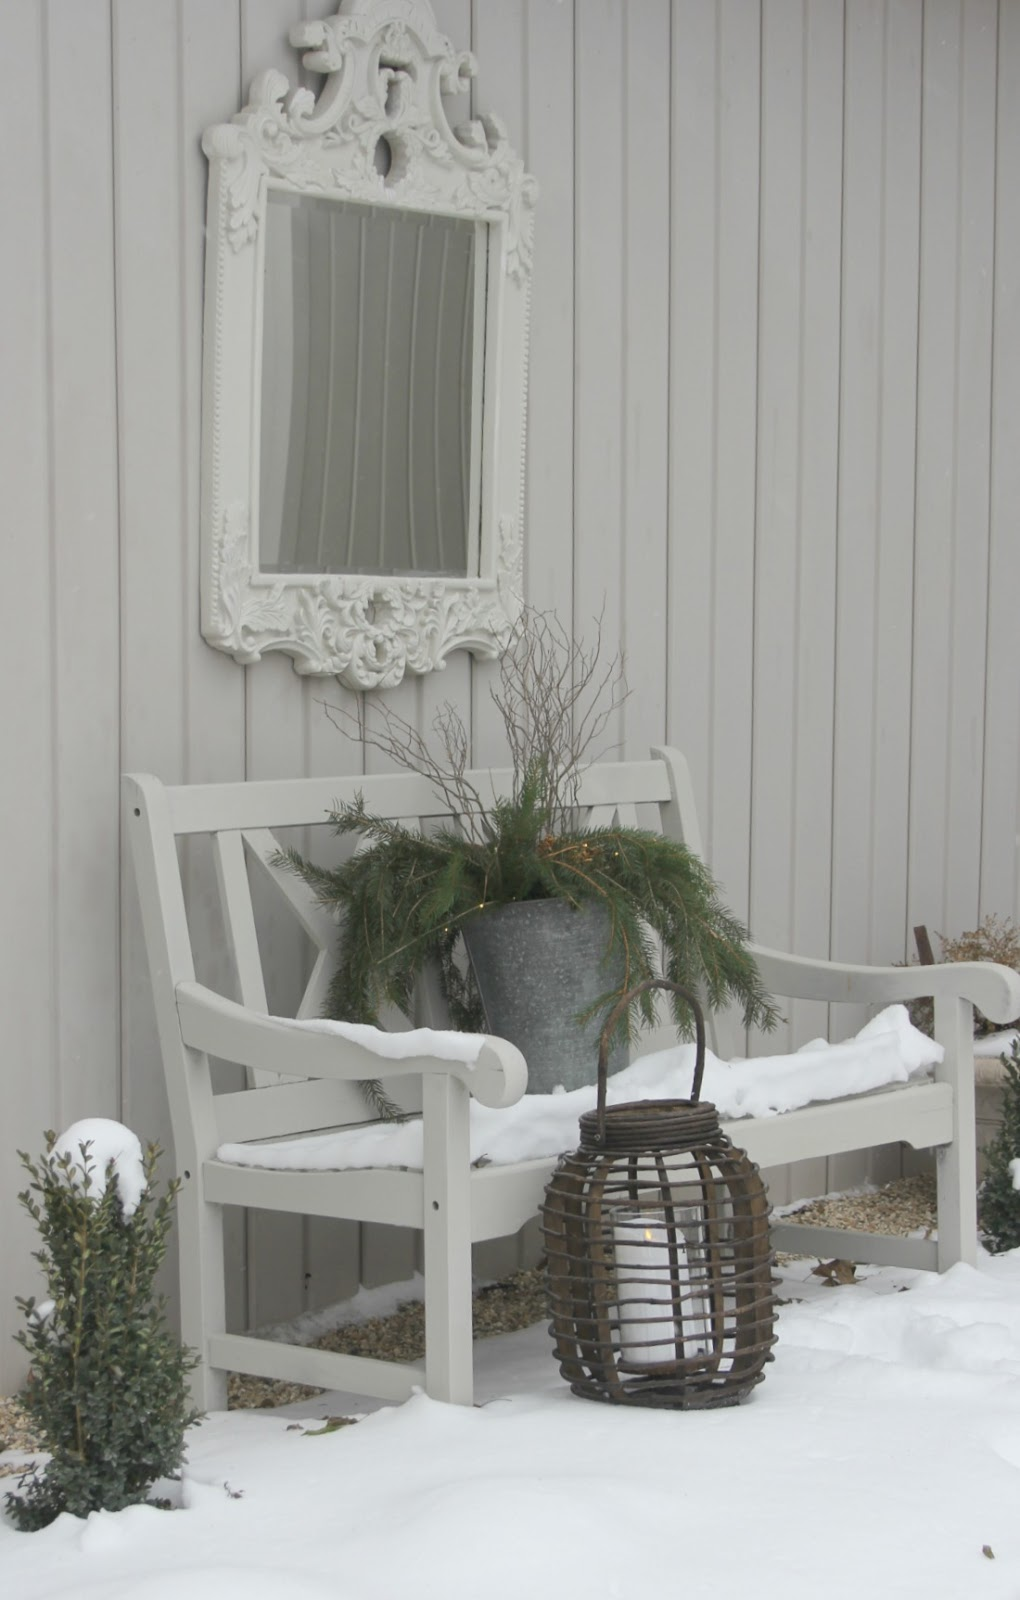 Swedish Christmas style outdoors at Christmas time. Hello Lovely Studio.